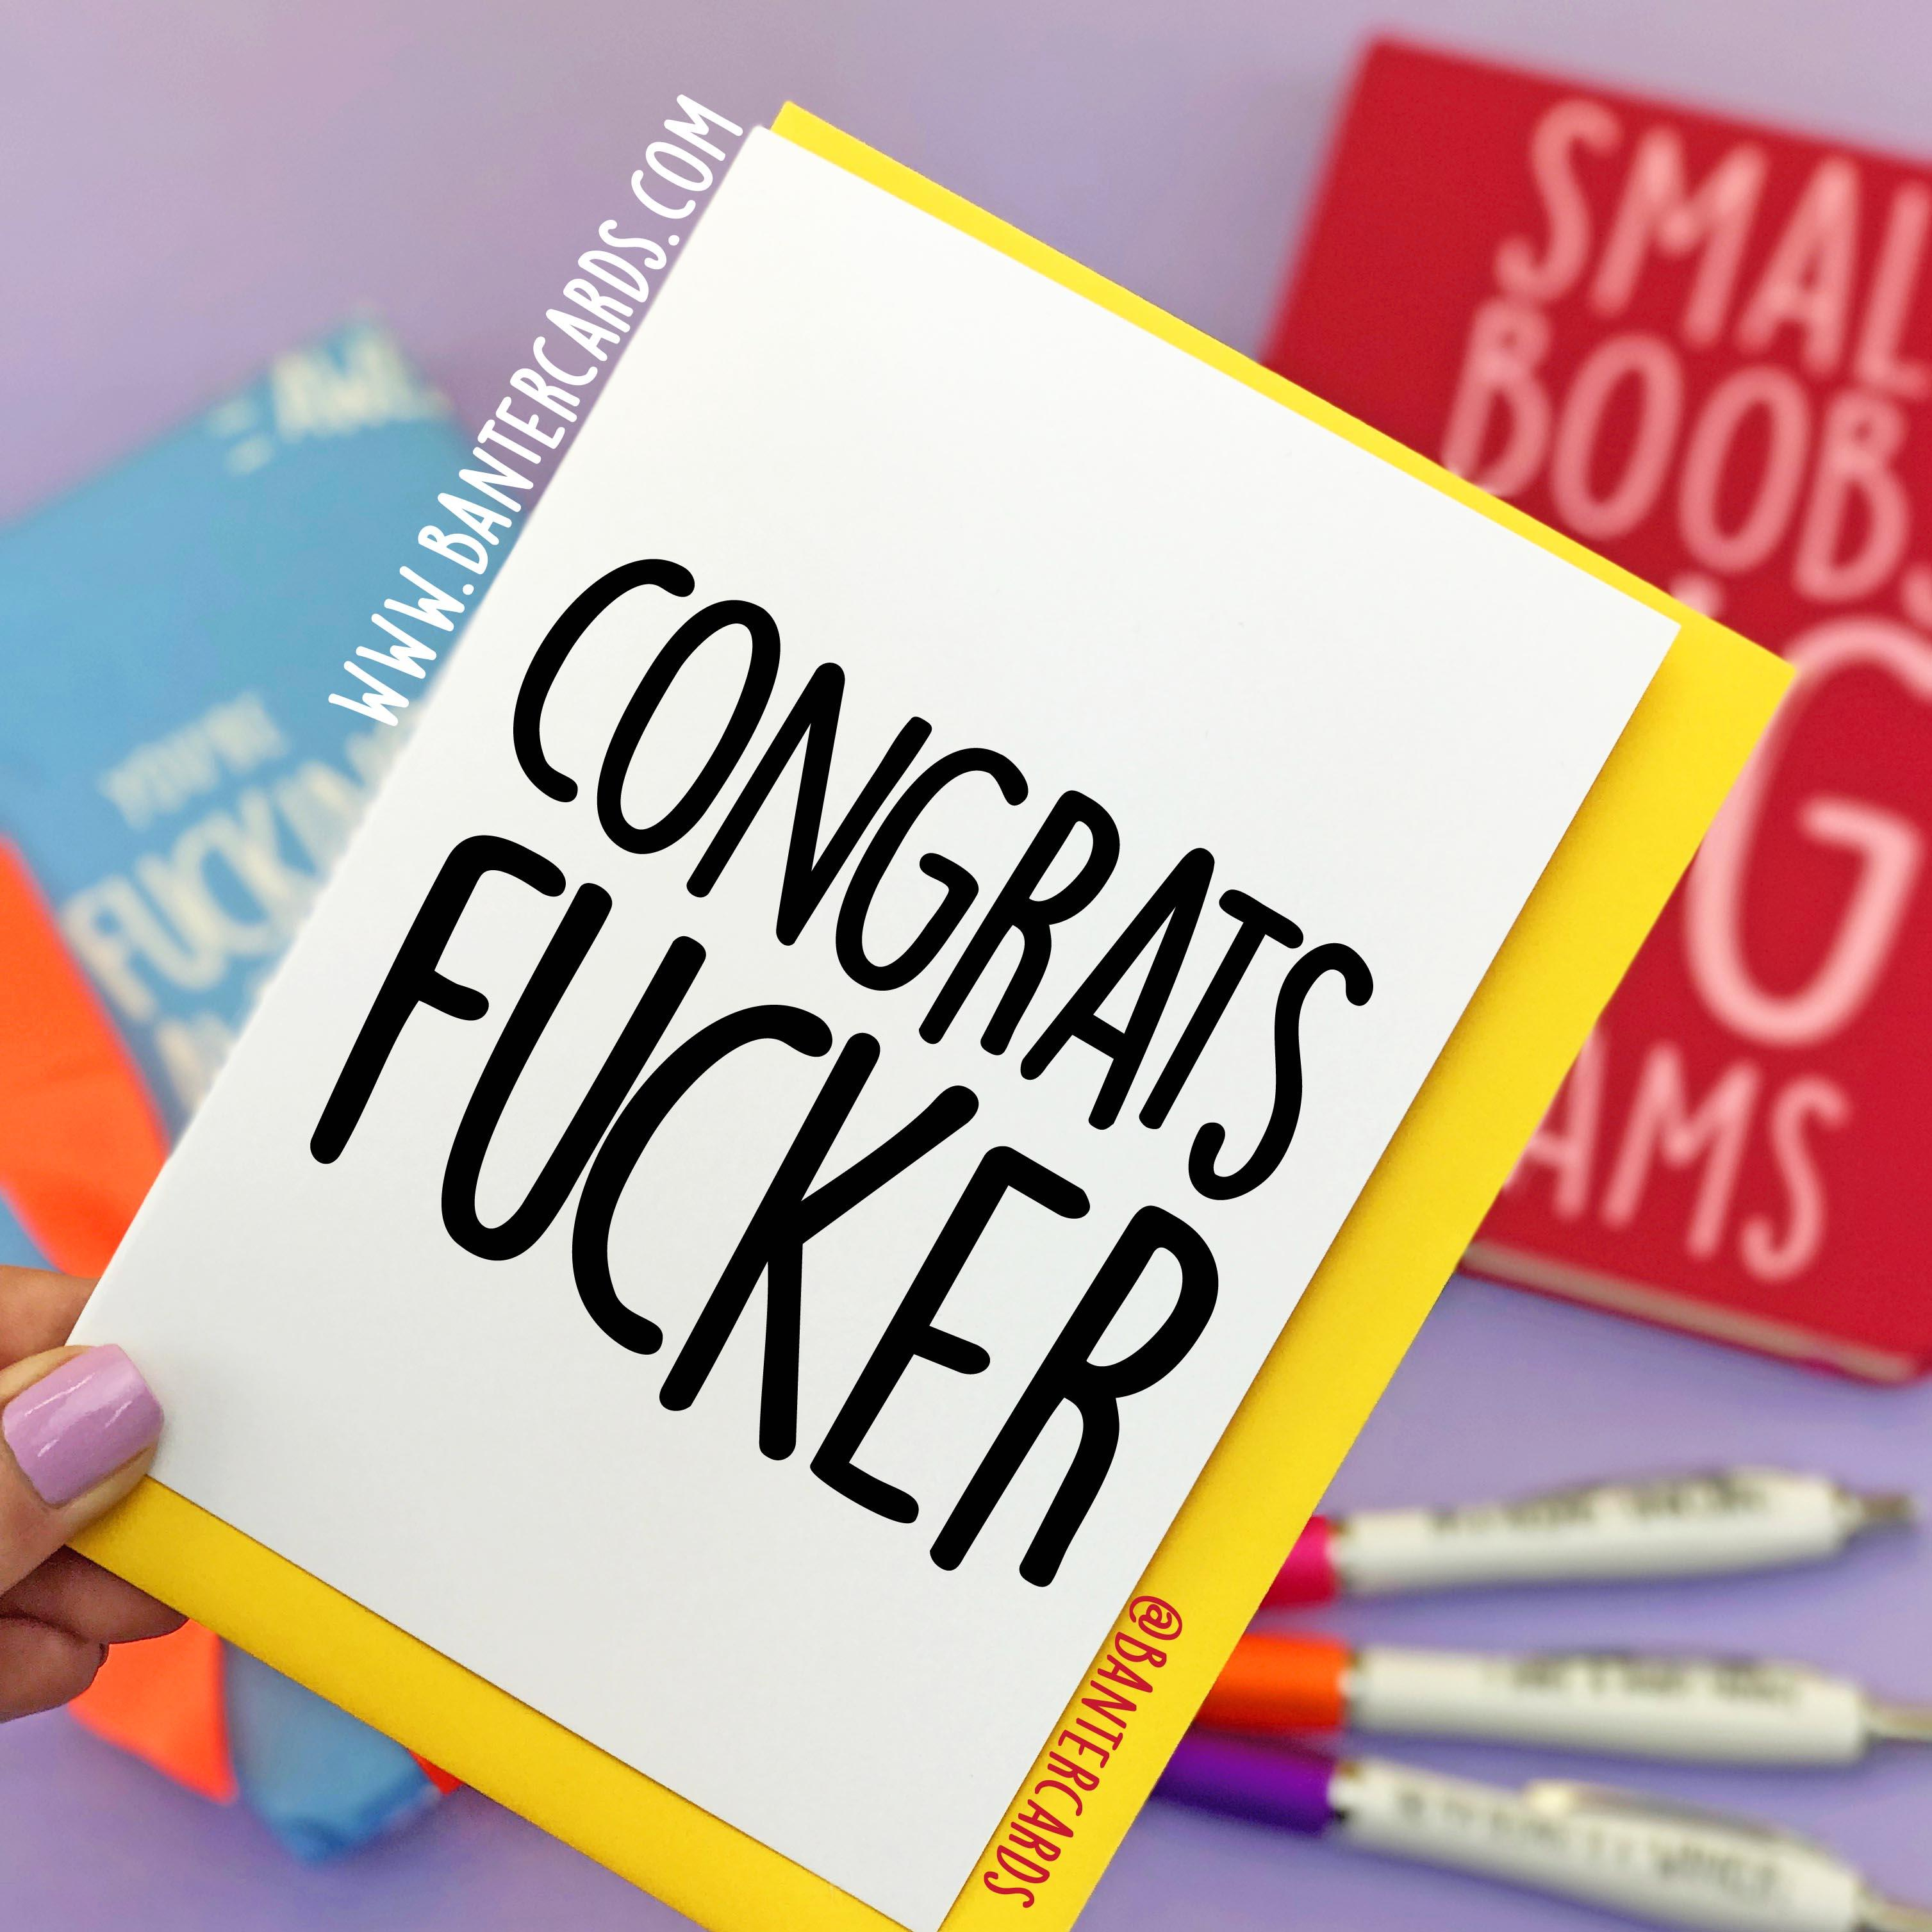 Congratulations cards for new job